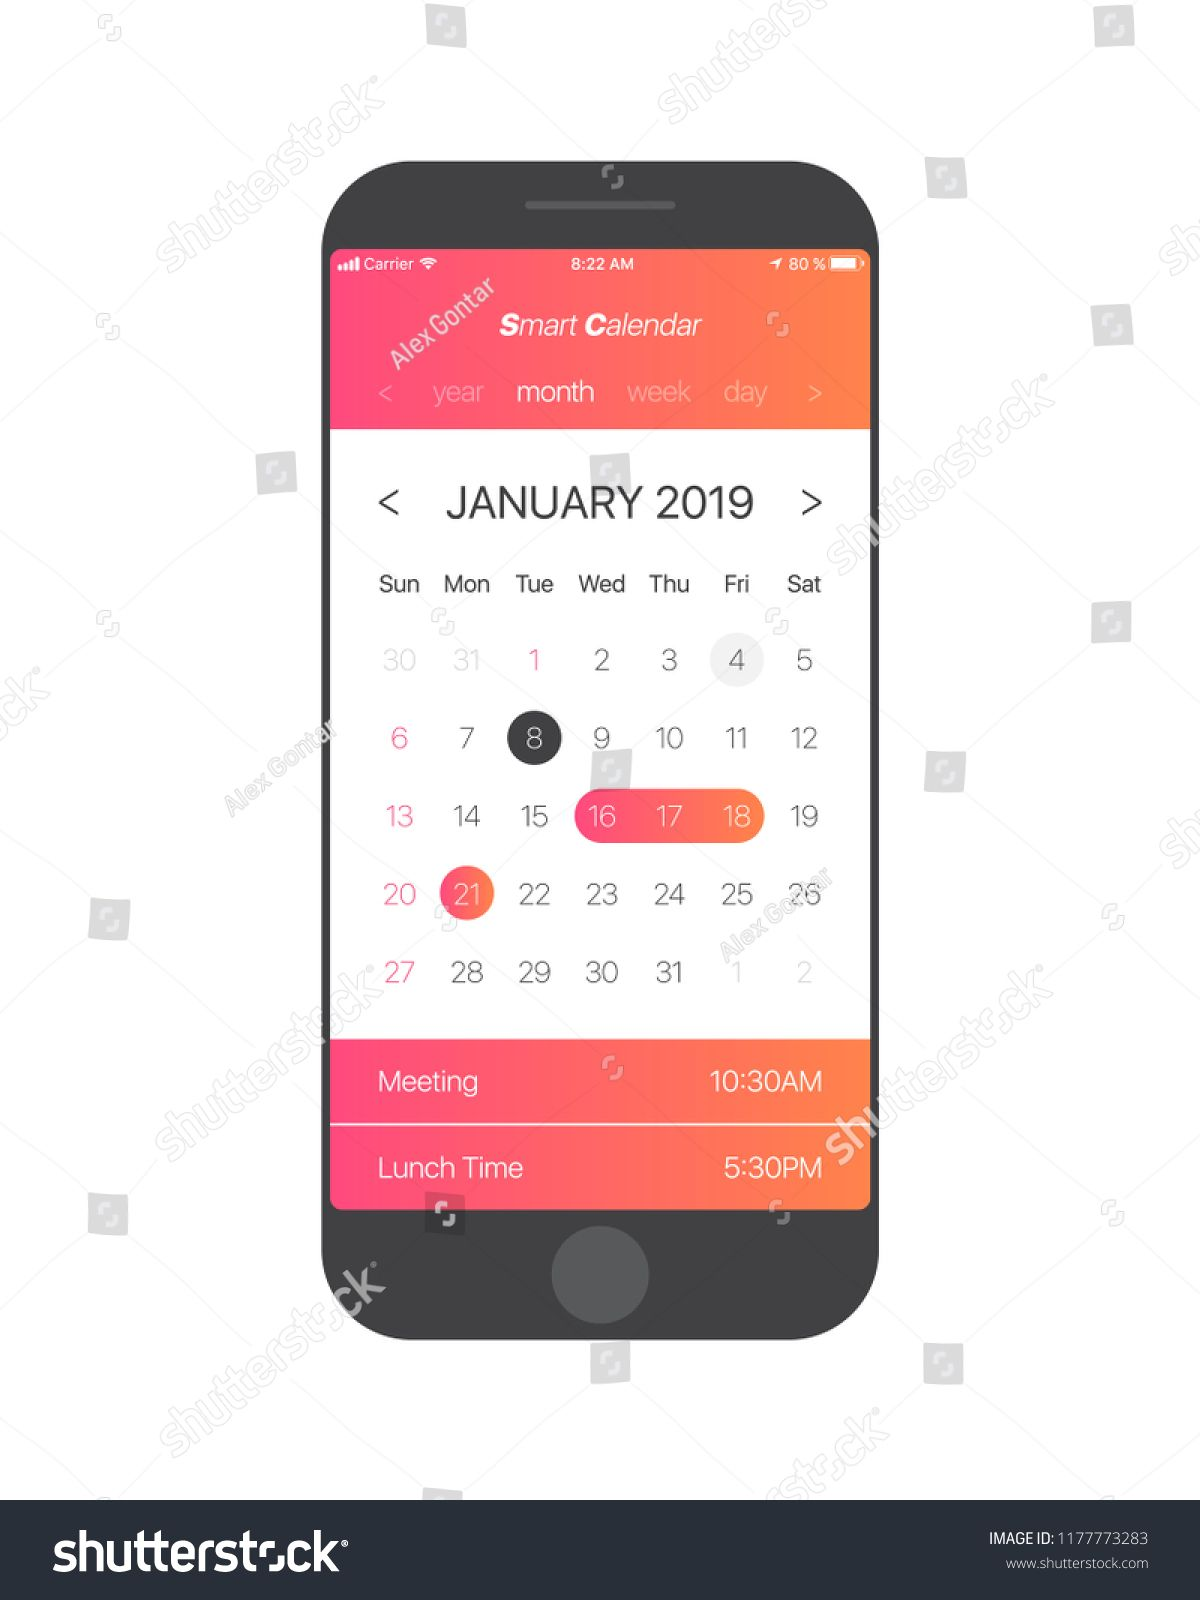 IPhone Apple IOs and Android Smart Calendar App Concept